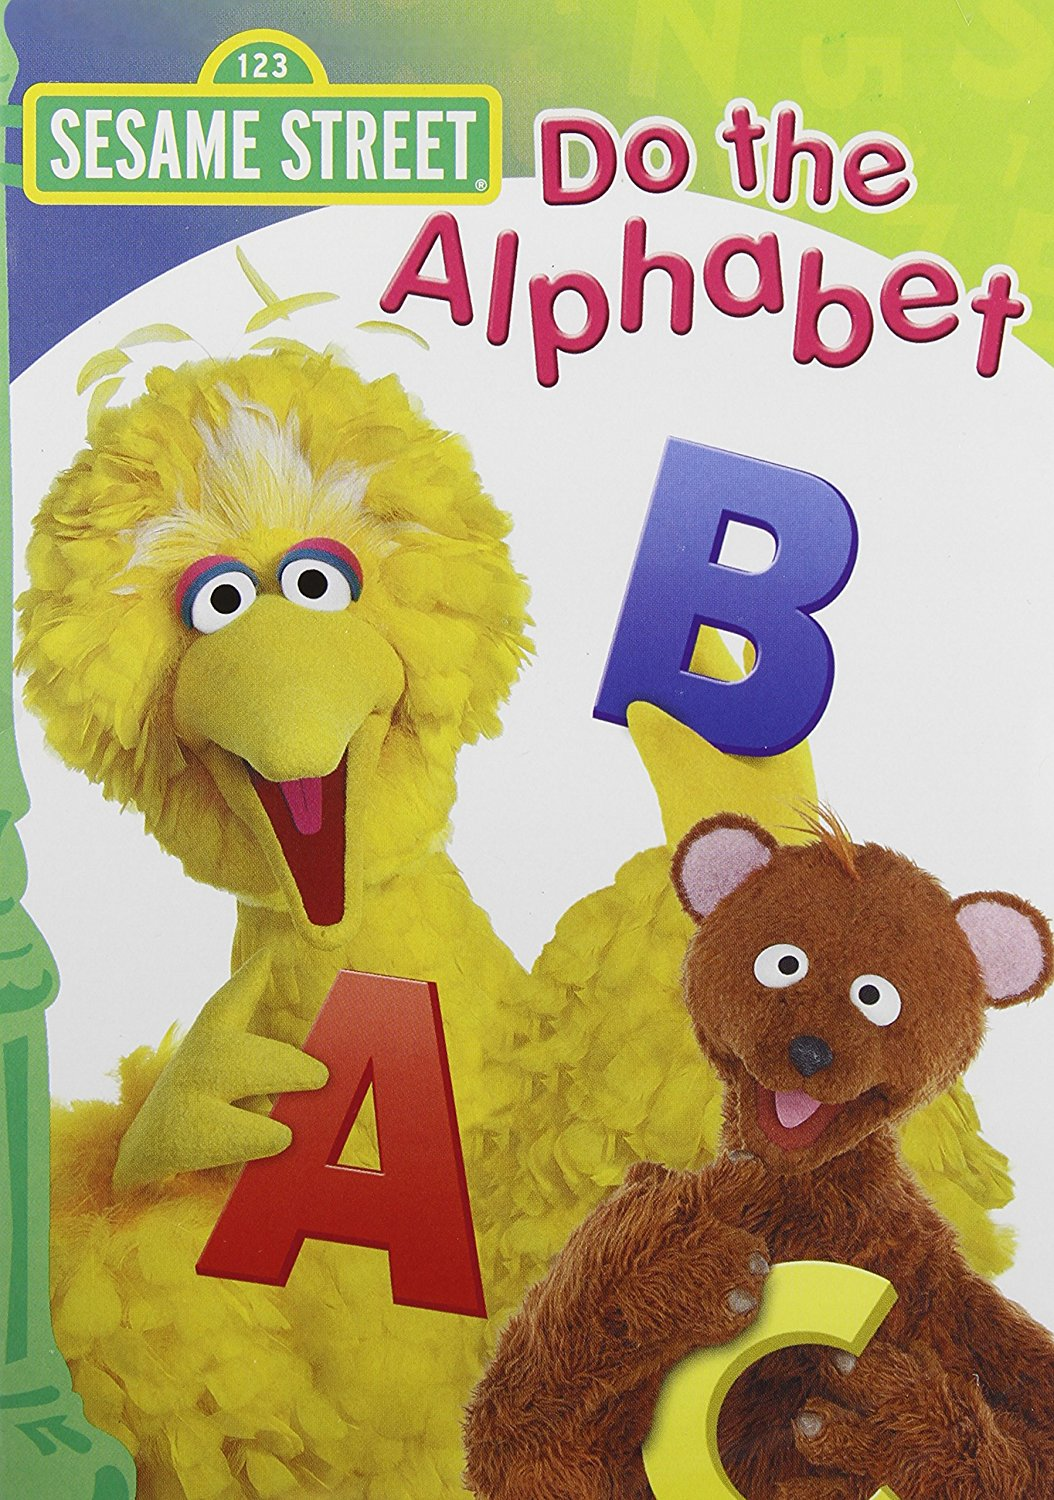 Sesame Workshop: Sesame Street Do The Alphabet Dvd by Sesame Street